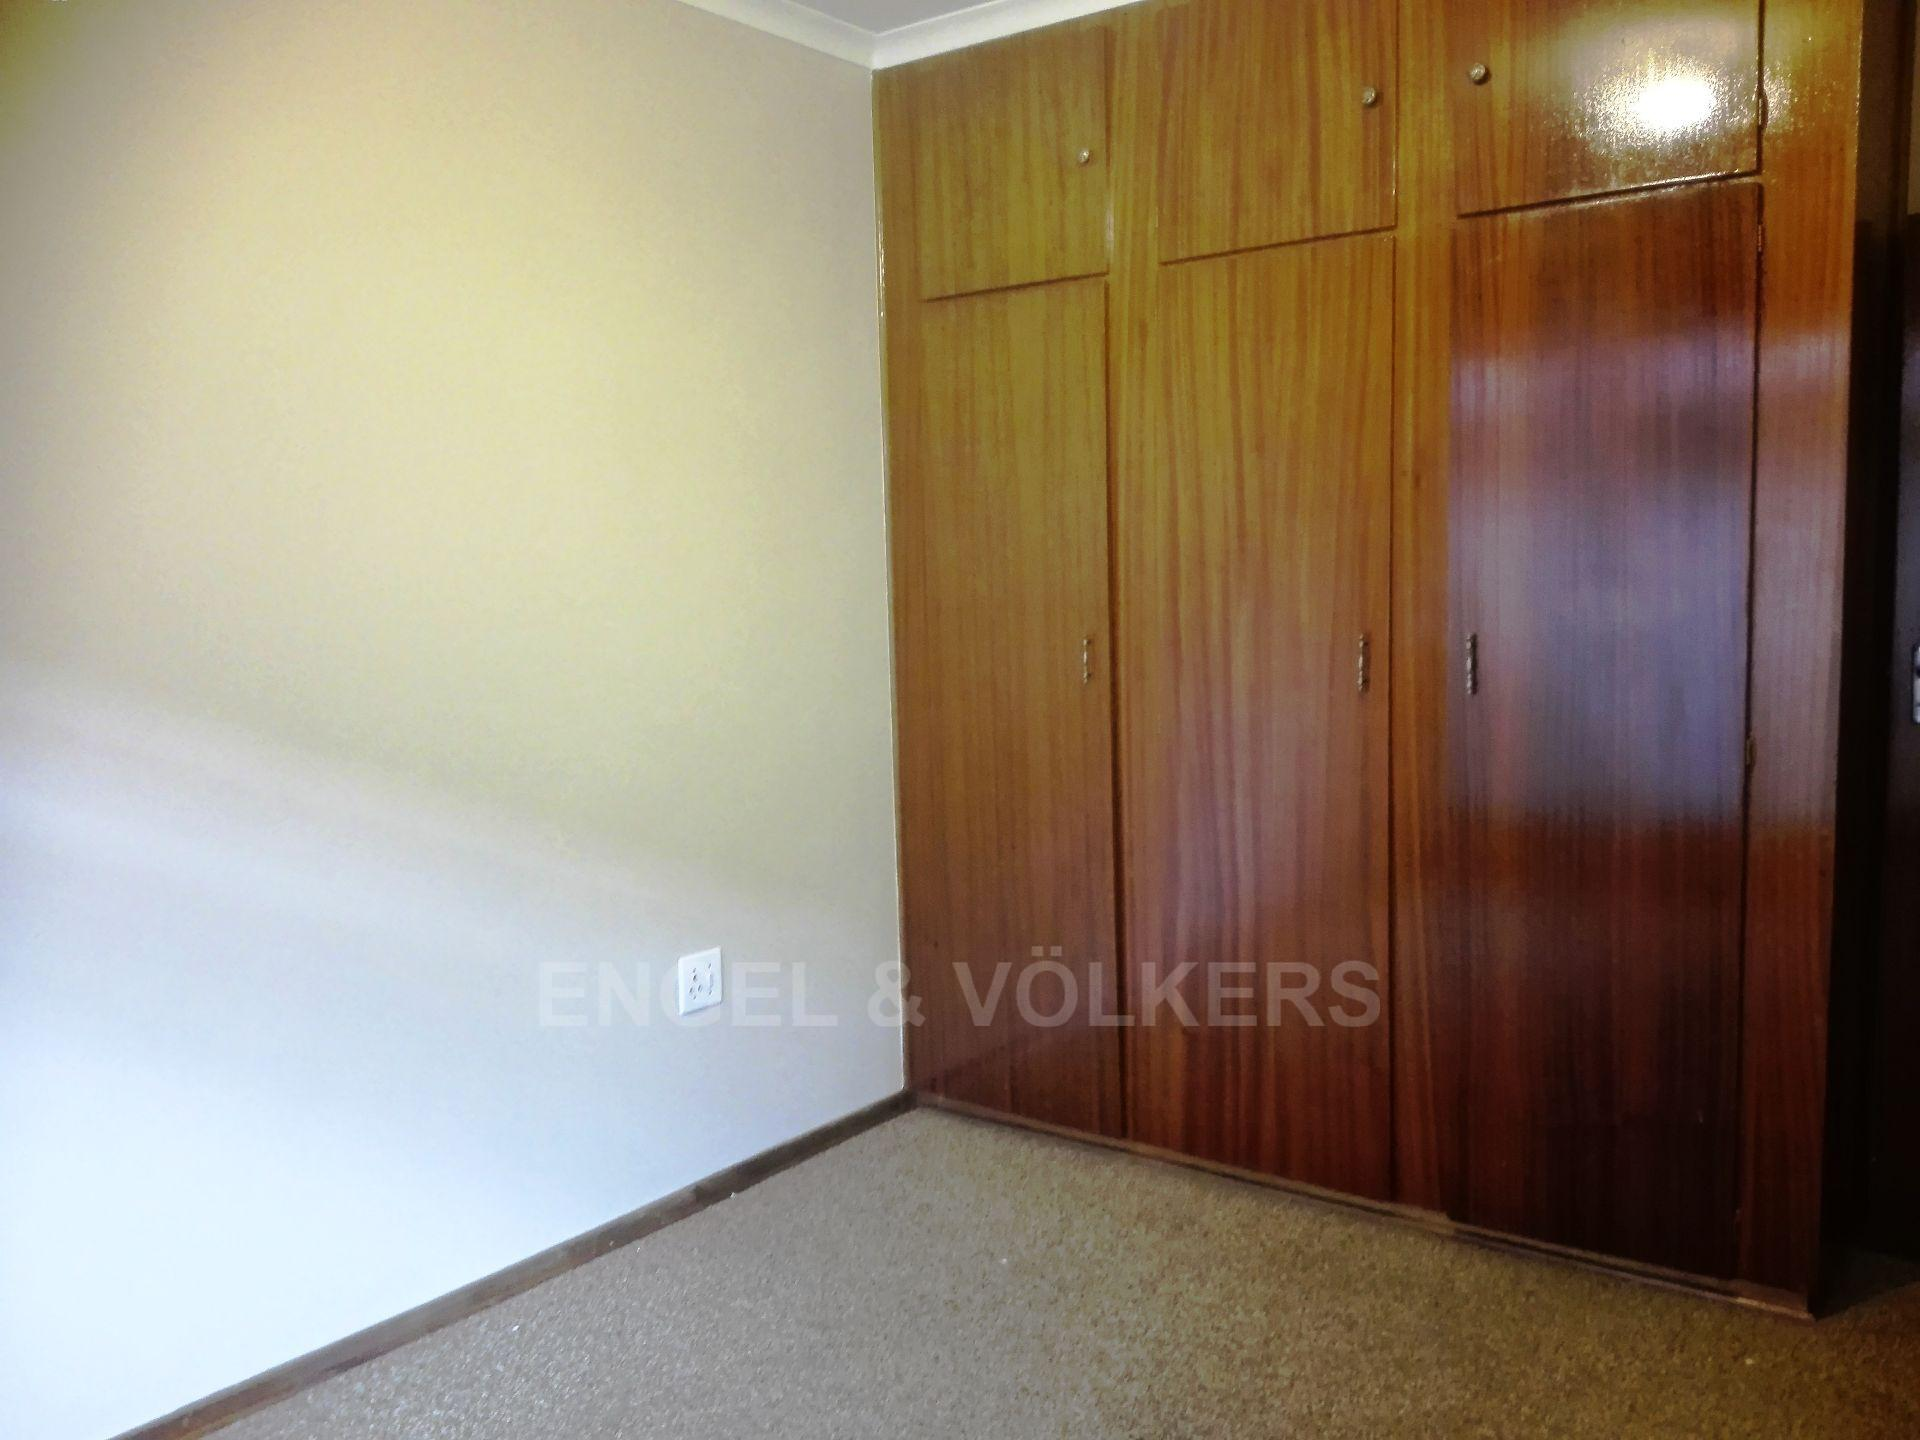 Potchefstroom property for sale. Ref No: 13498695. Picture no 15